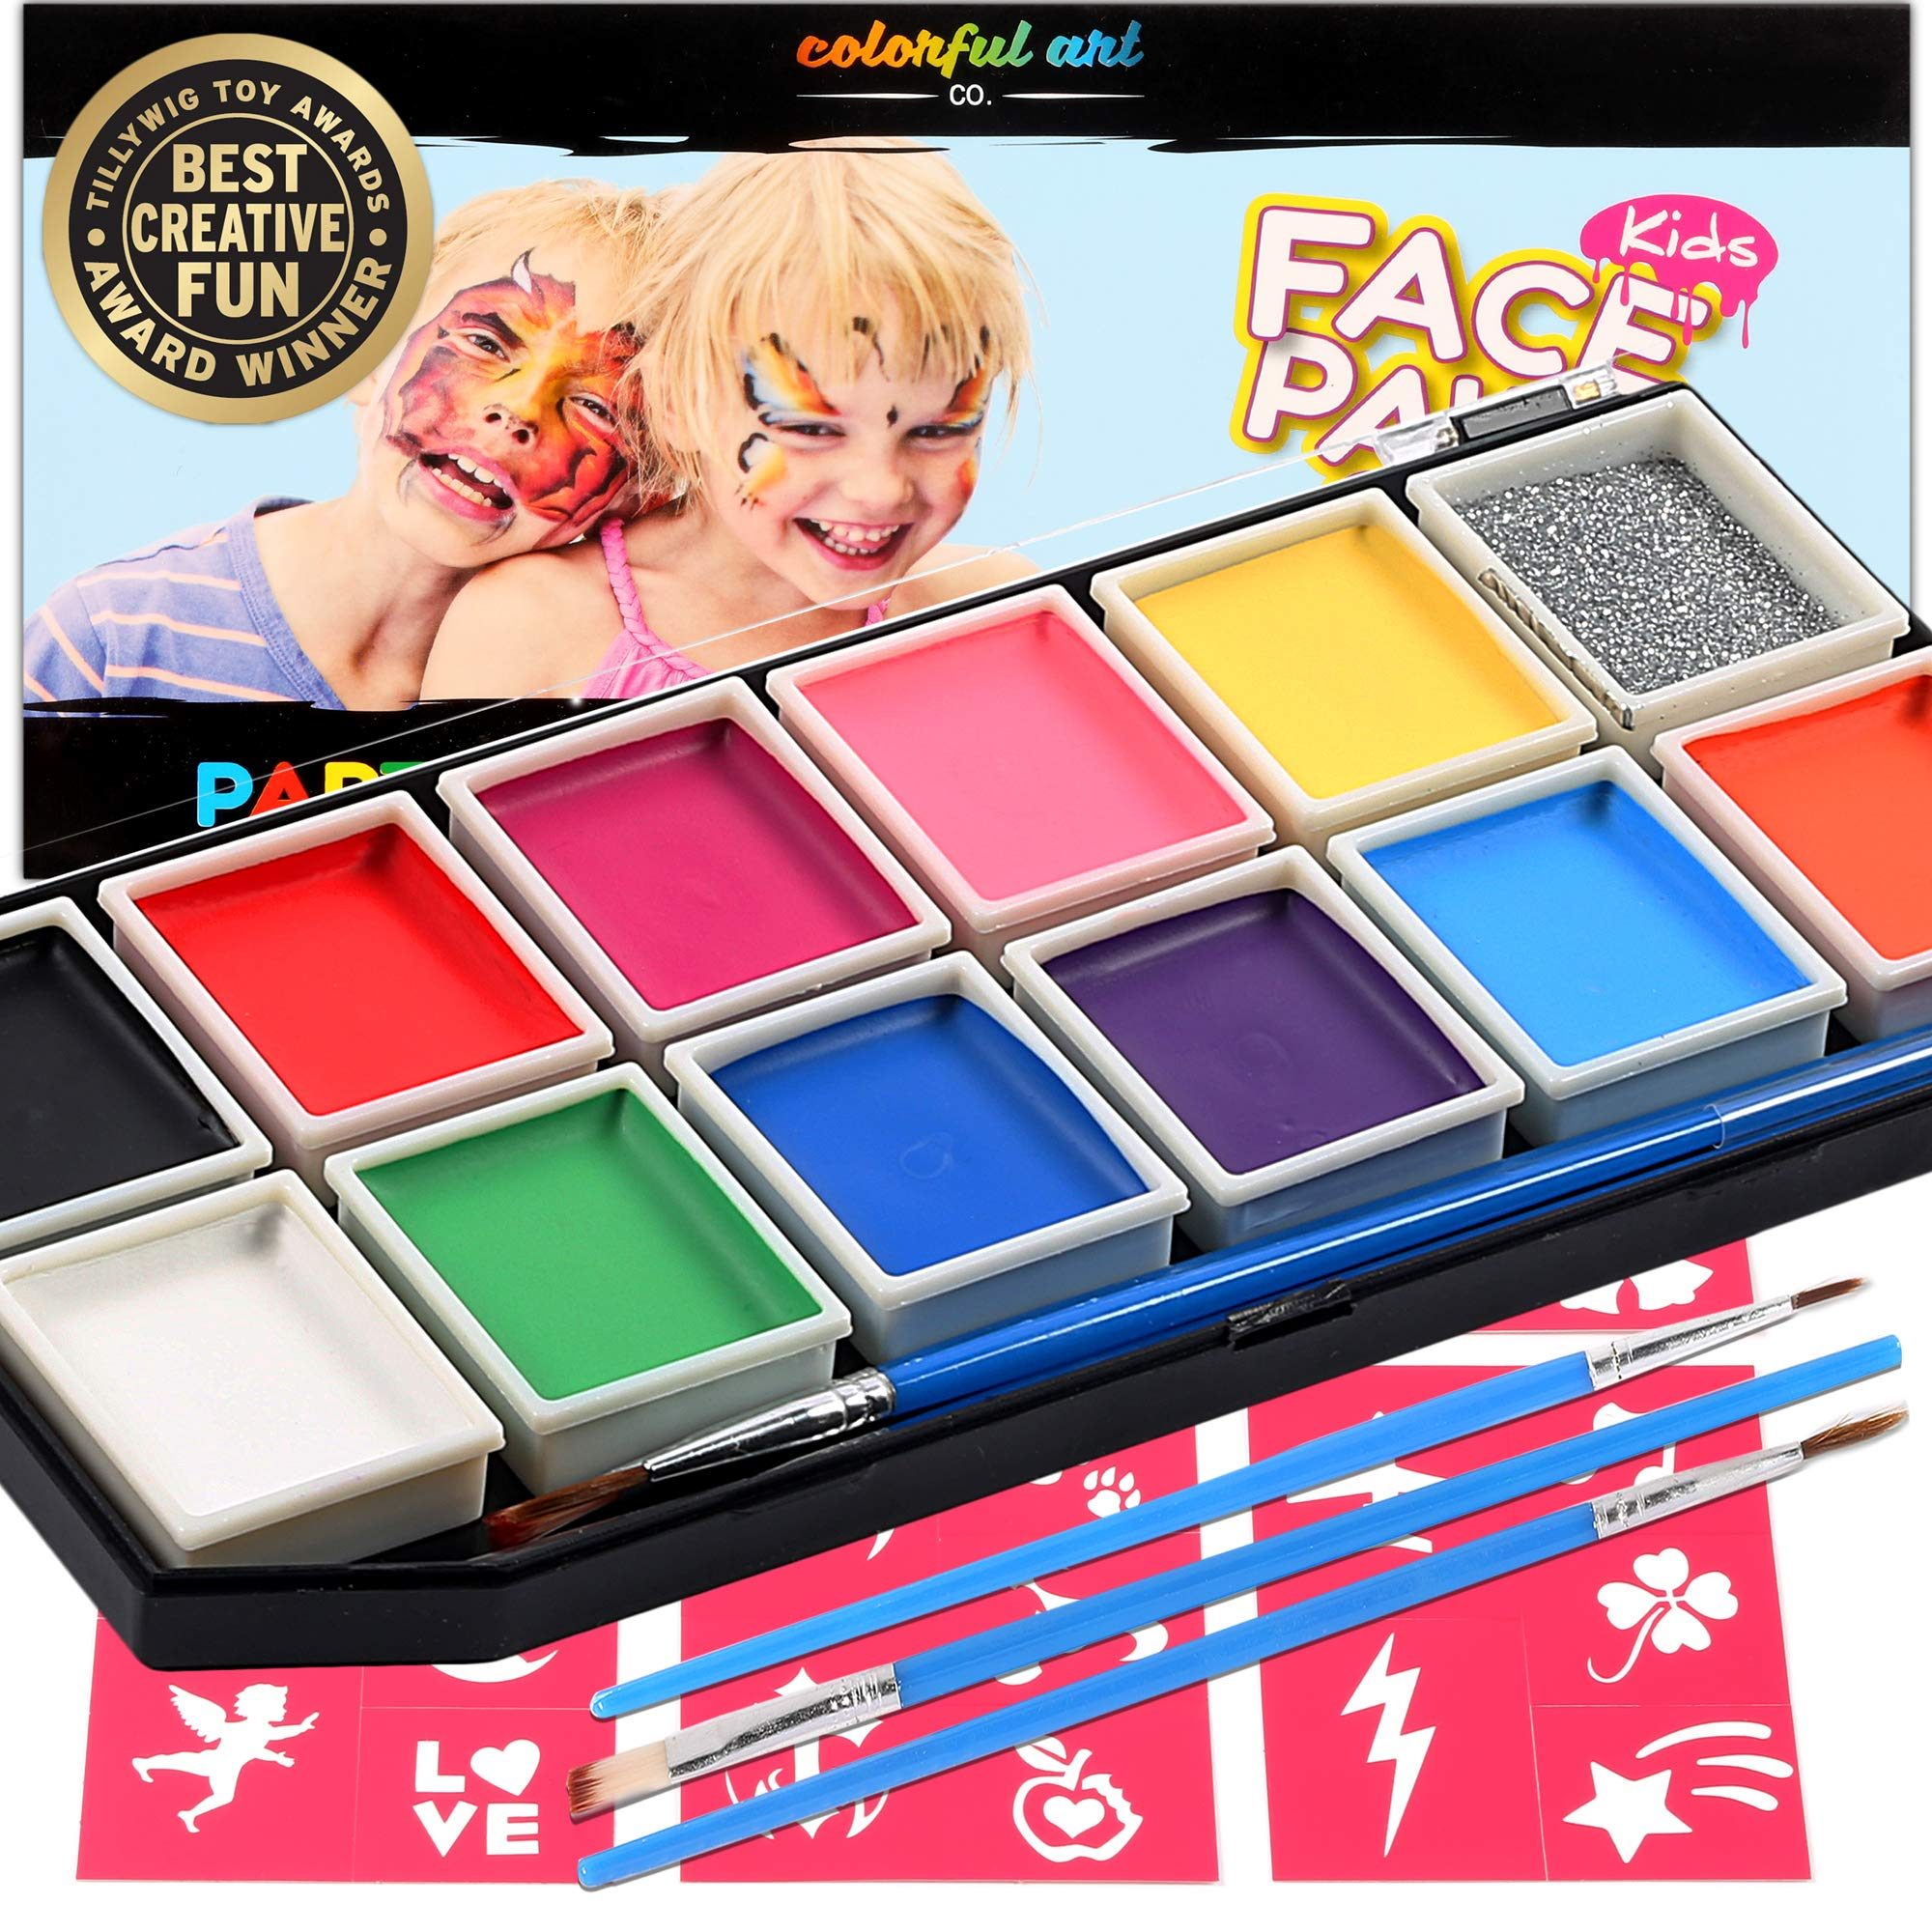 Award Winning Face Paint - Professional 12 Color Mega Palette Face Painting Kits for Kids | Best Cosplay Paints Kit | 3 Brushes Glitter 30 Stencils Sturdy Case | Fda Approved Non Toxic | Online Guide